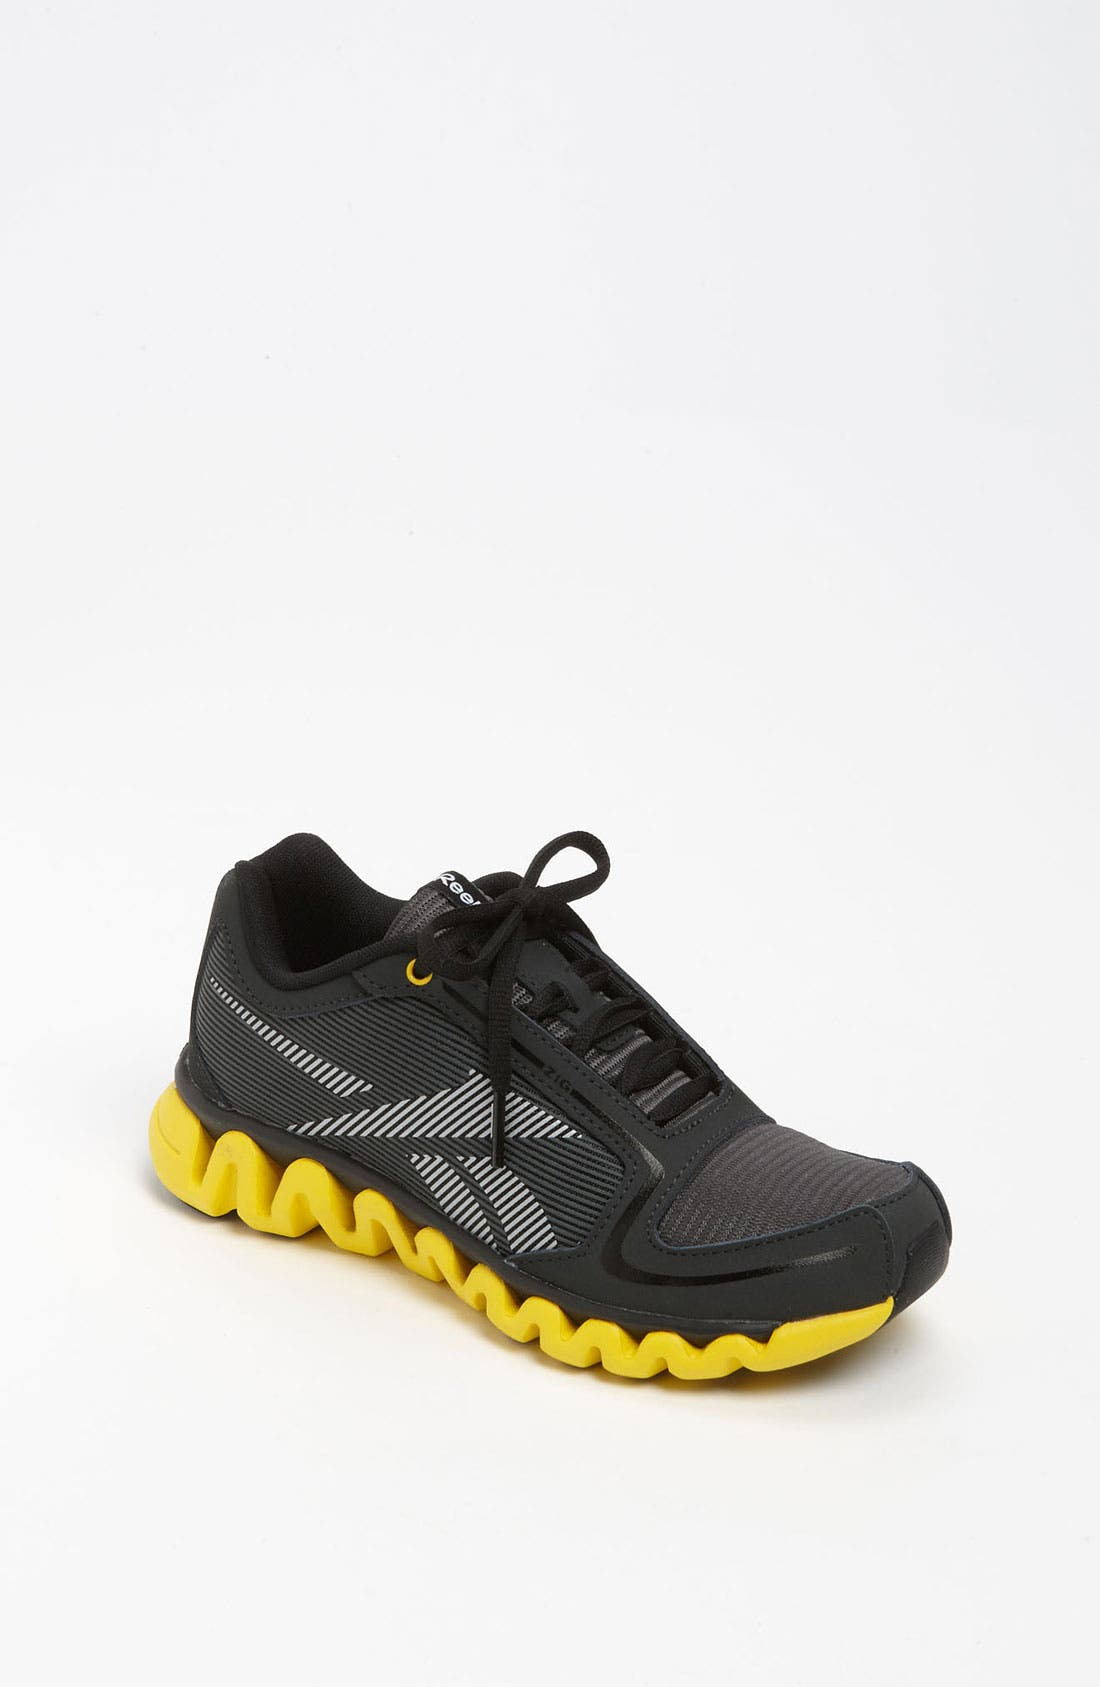 Alternate Image 1 Selected - Reebok 'ZigLite Run' Sneaker (Toddler, Little Kid & Big Kid)